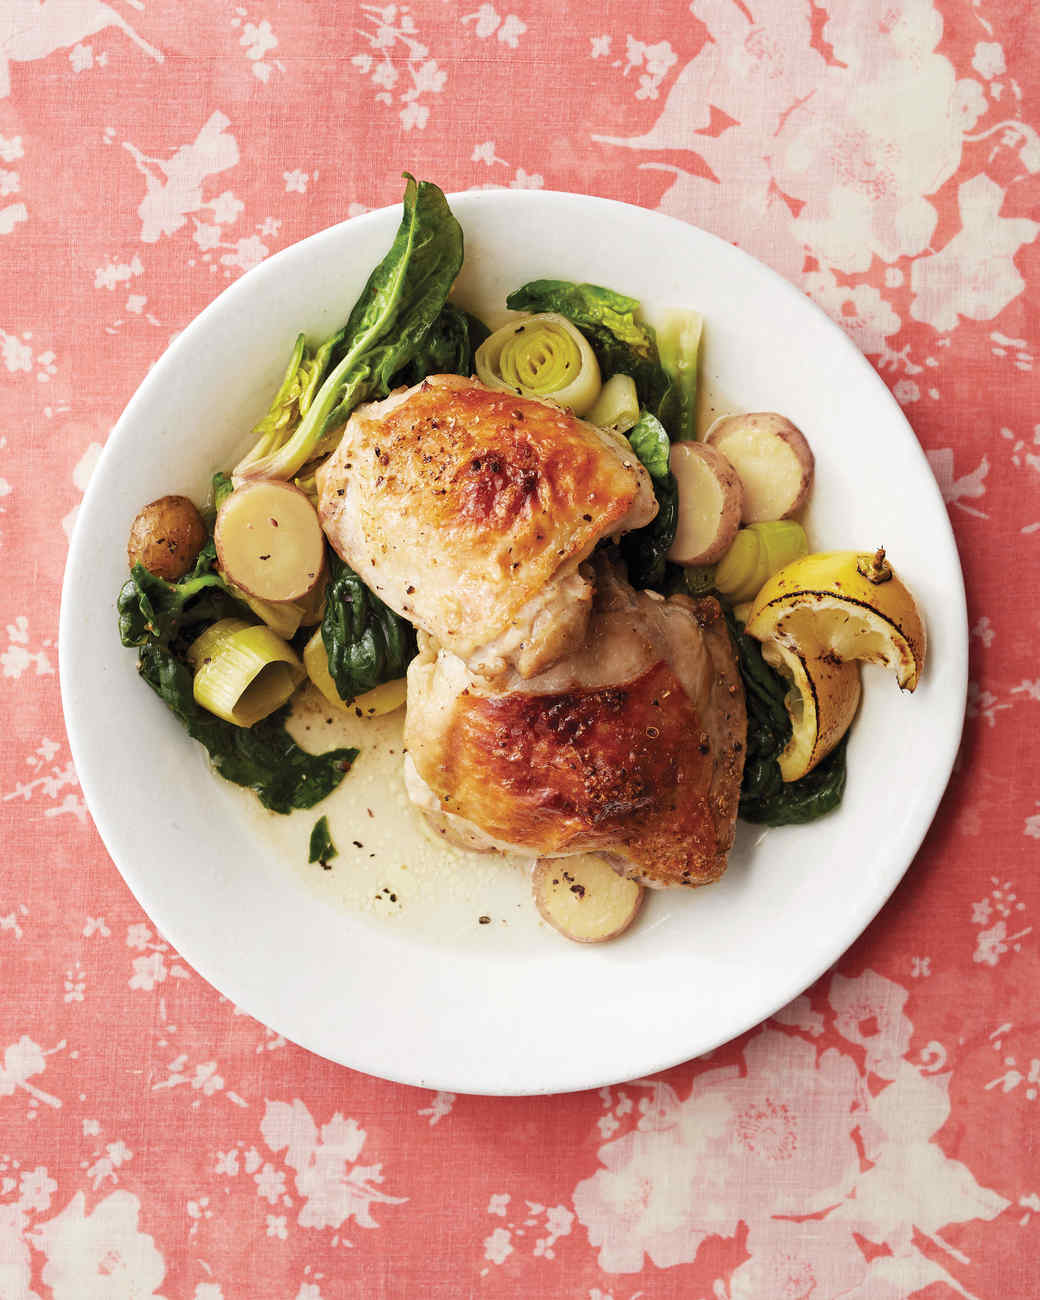 skillet-chicken-with-leeks-potatoes-and-spinach-2-upper-right-potato-highlight-137-d112793.jpg